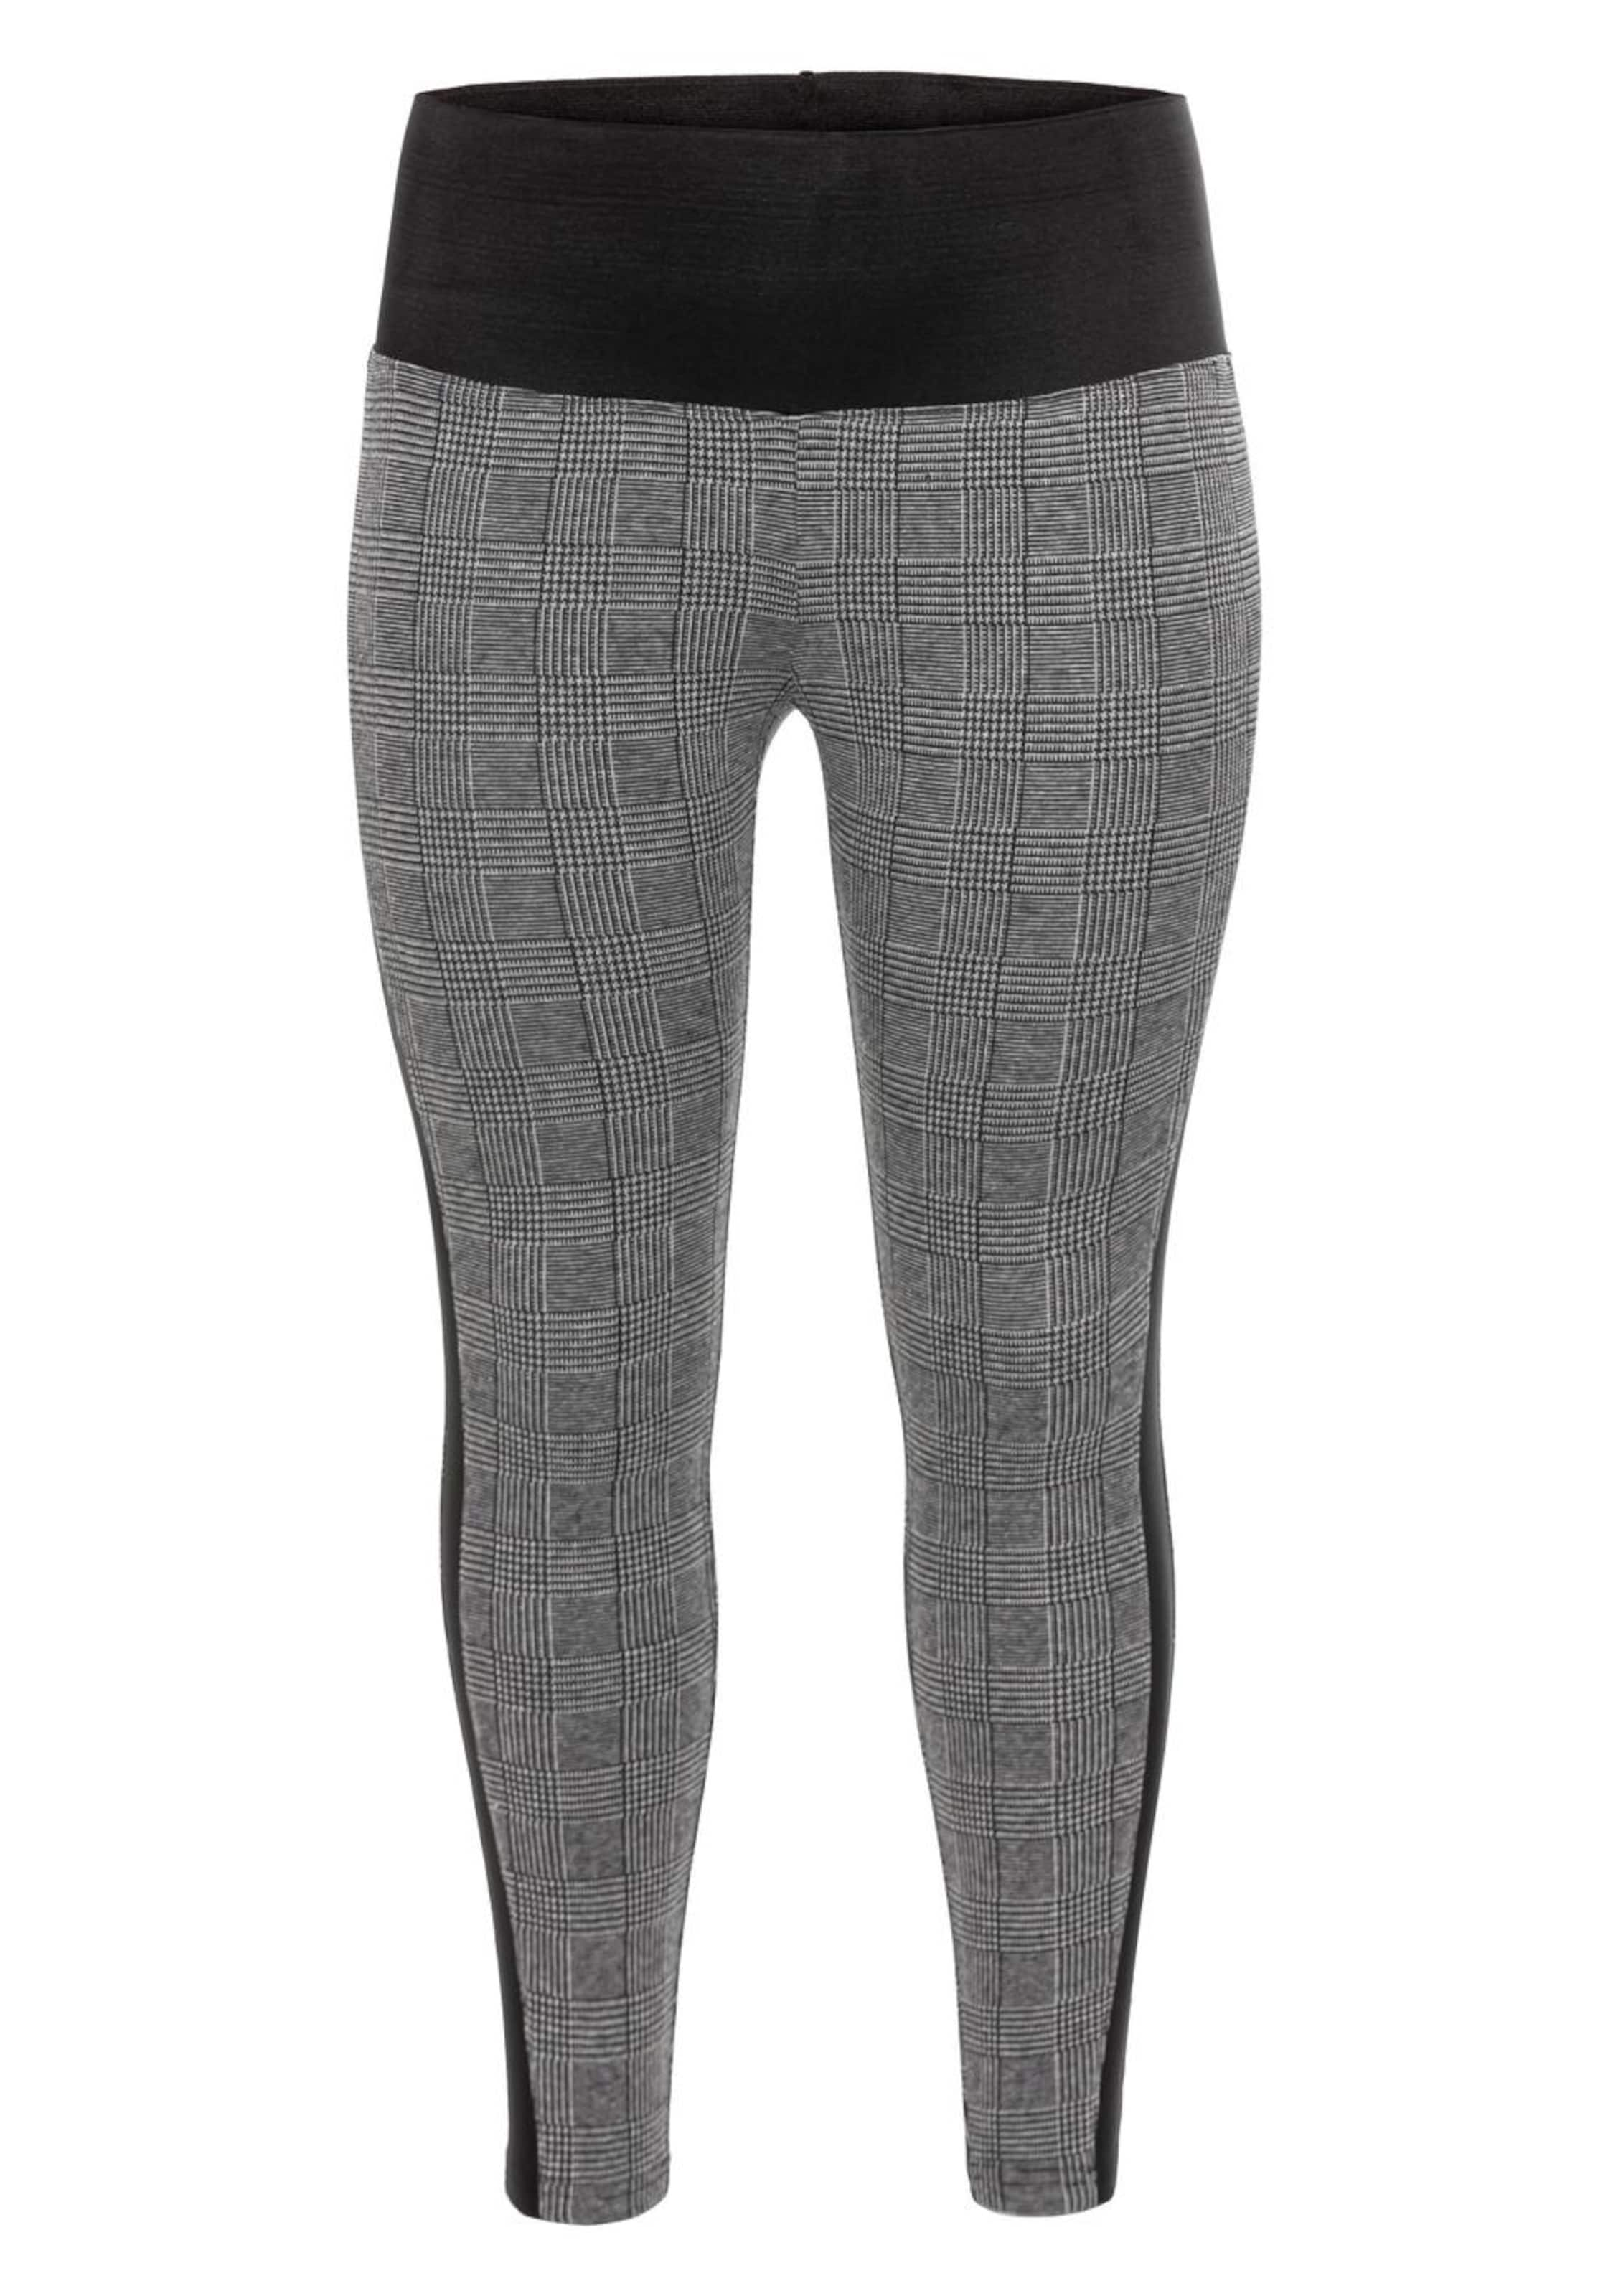 In Schwarz Leggings GrauDunkelgrau Sheego Style lu35TFK1Jc